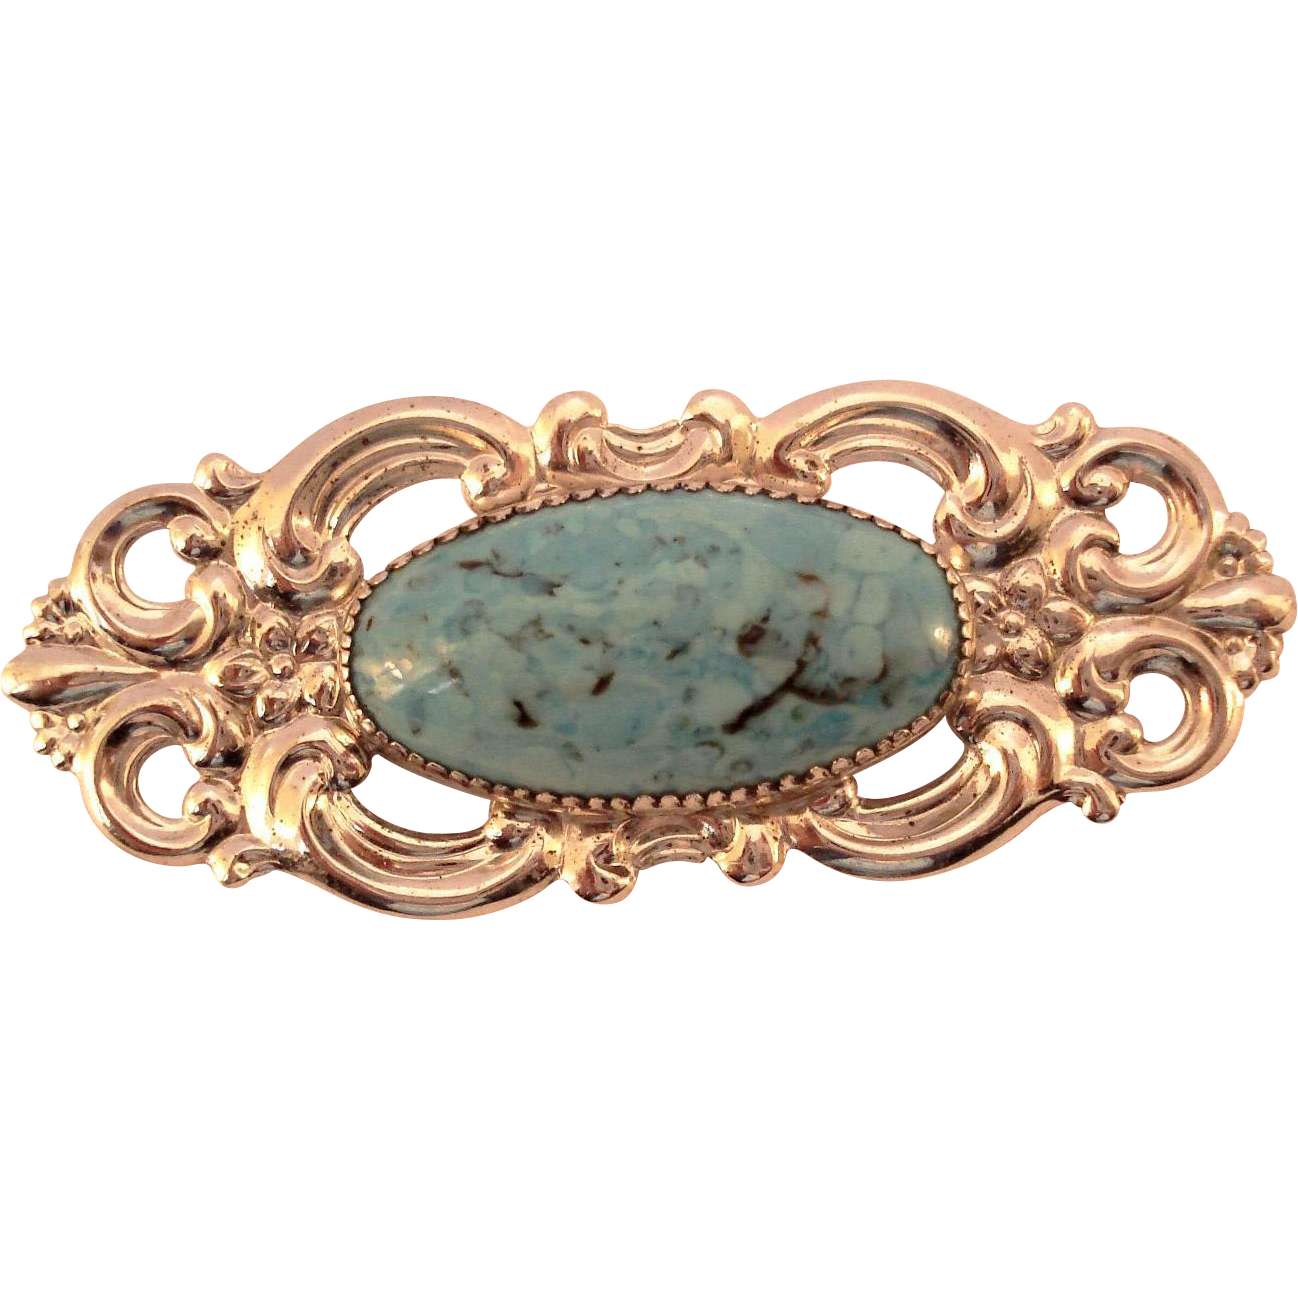 Ornate Beau Sterling Silver Faux Turquoise Glass Pin Brooch